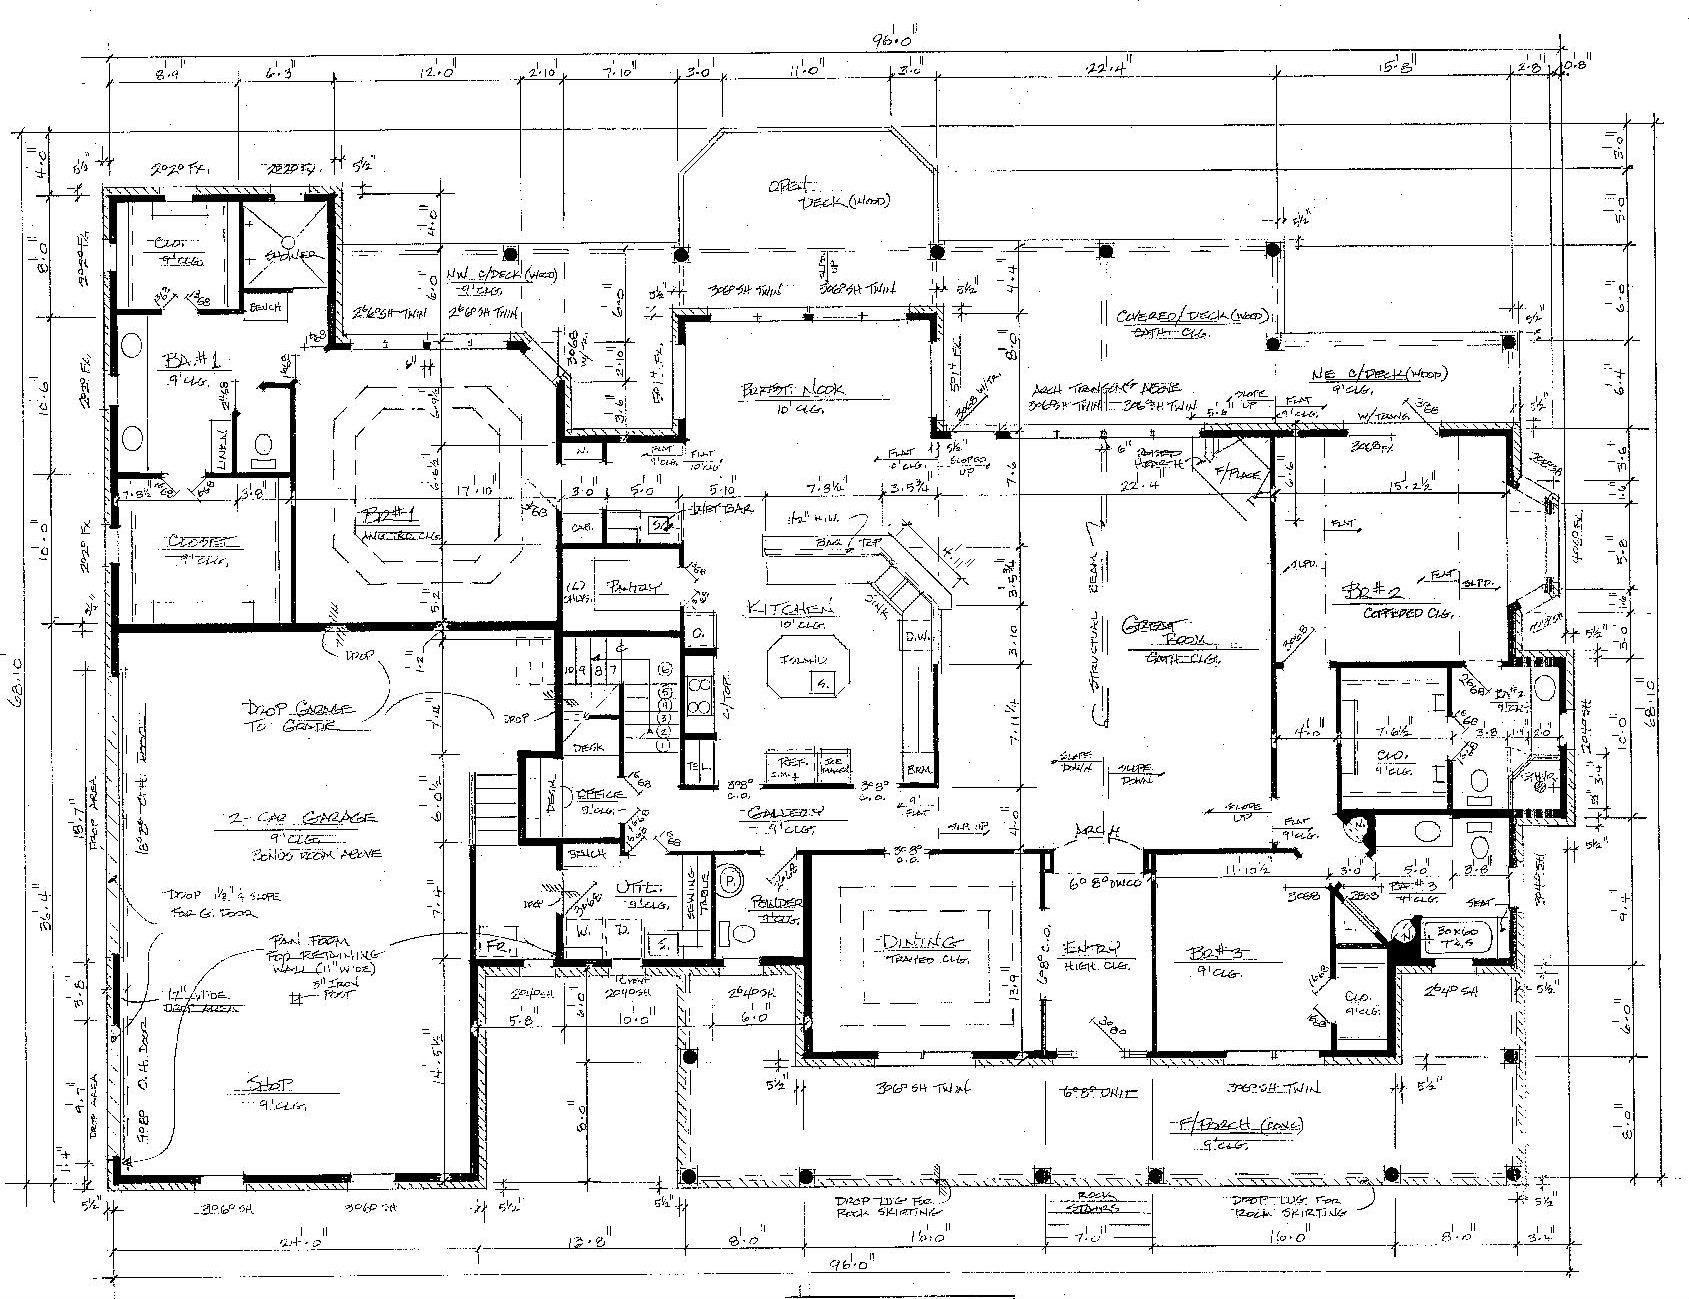 Completed Home Renovation Fully Completed Structural And Internal Fitout I Ll Allow Tim Drawing House Plans Architecture Blueprints Home Design Floor Plans